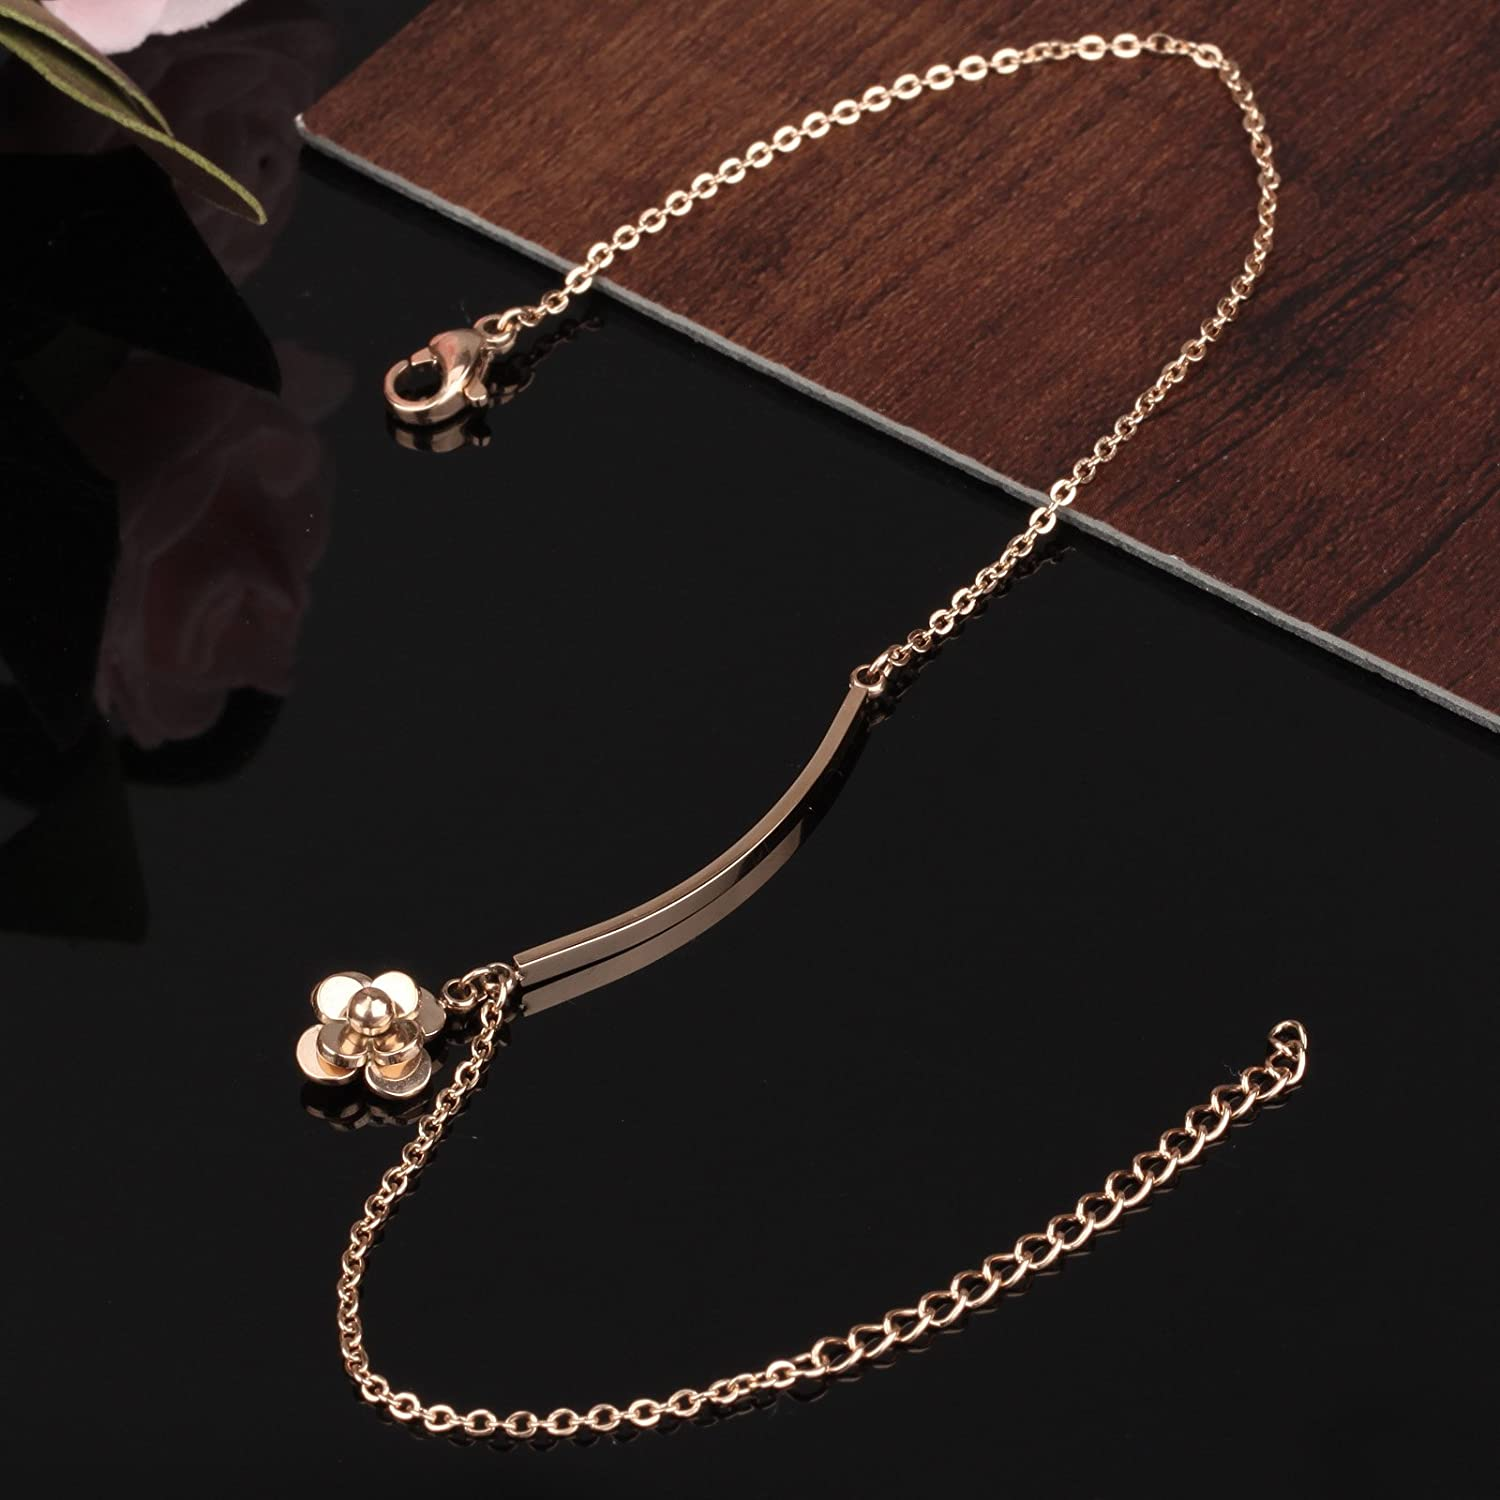 CHARMFAME Rose Gold Plated Stainless Steel Anklet Lovely Flower Ankle Bracelet Fashion Foot Jewelry for Women /& Girls